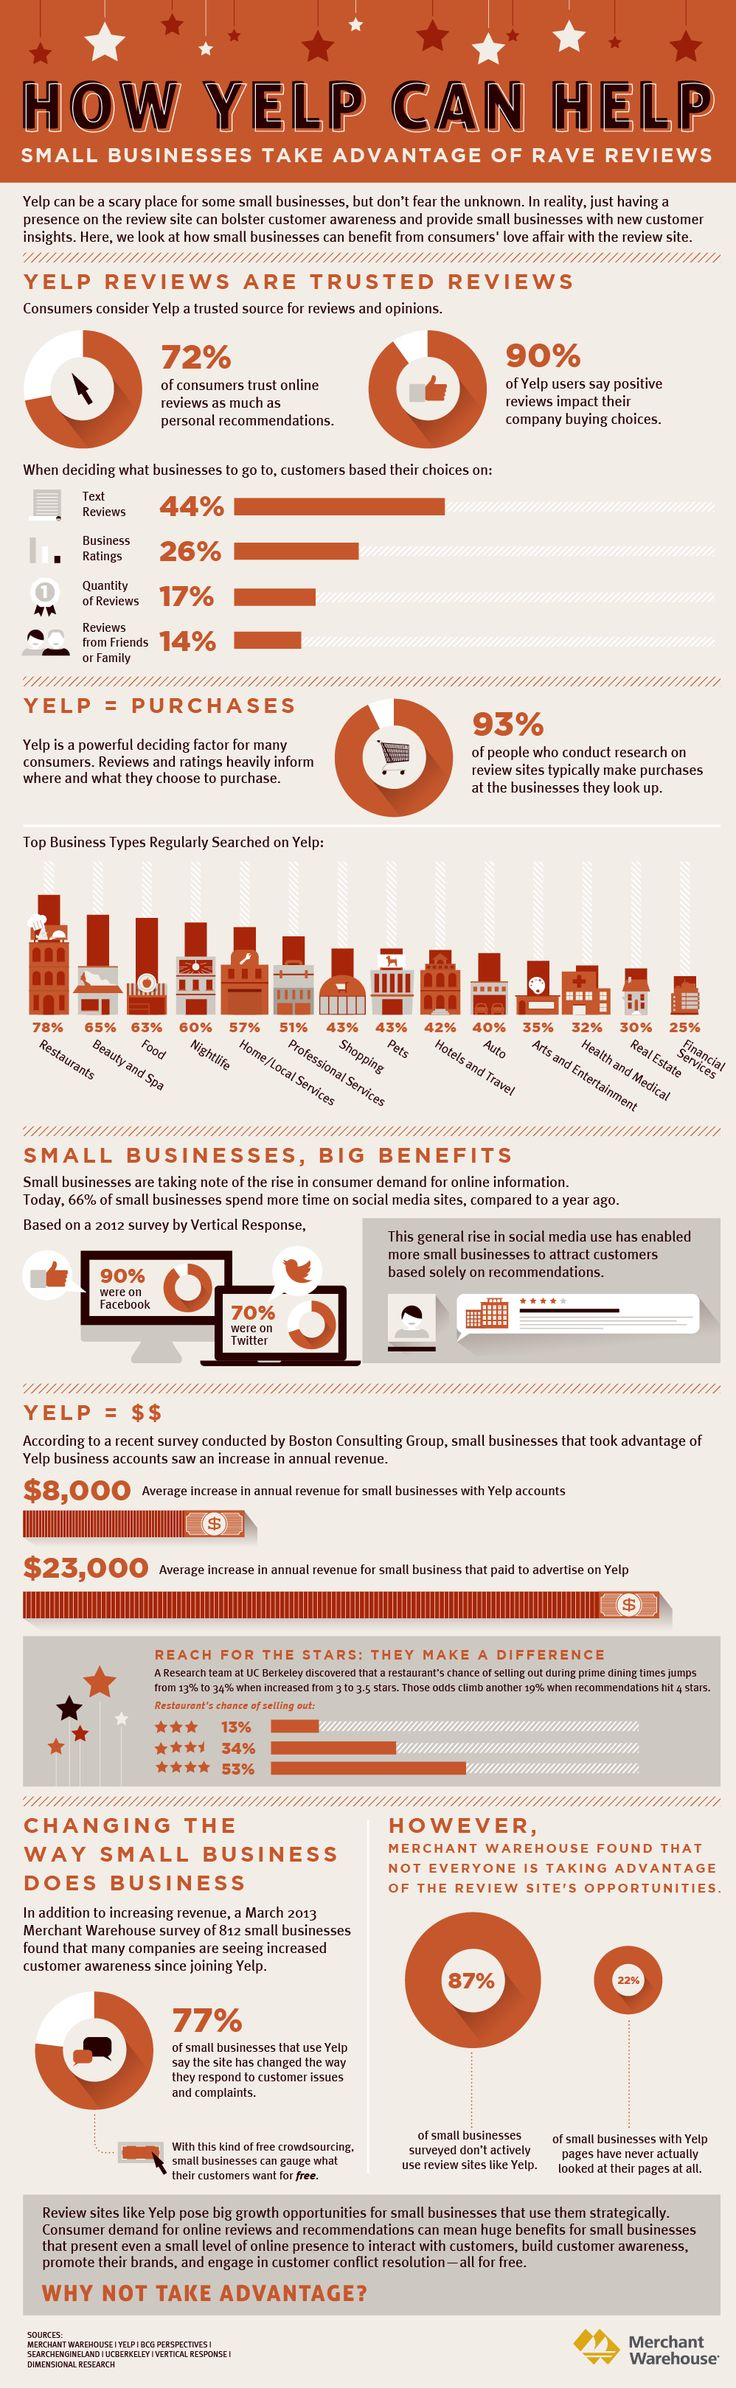 According to Yelp, it Affects 93% Of Researched Purchases & Increases Revenue For Small Businesses. via BleckConsulting.com